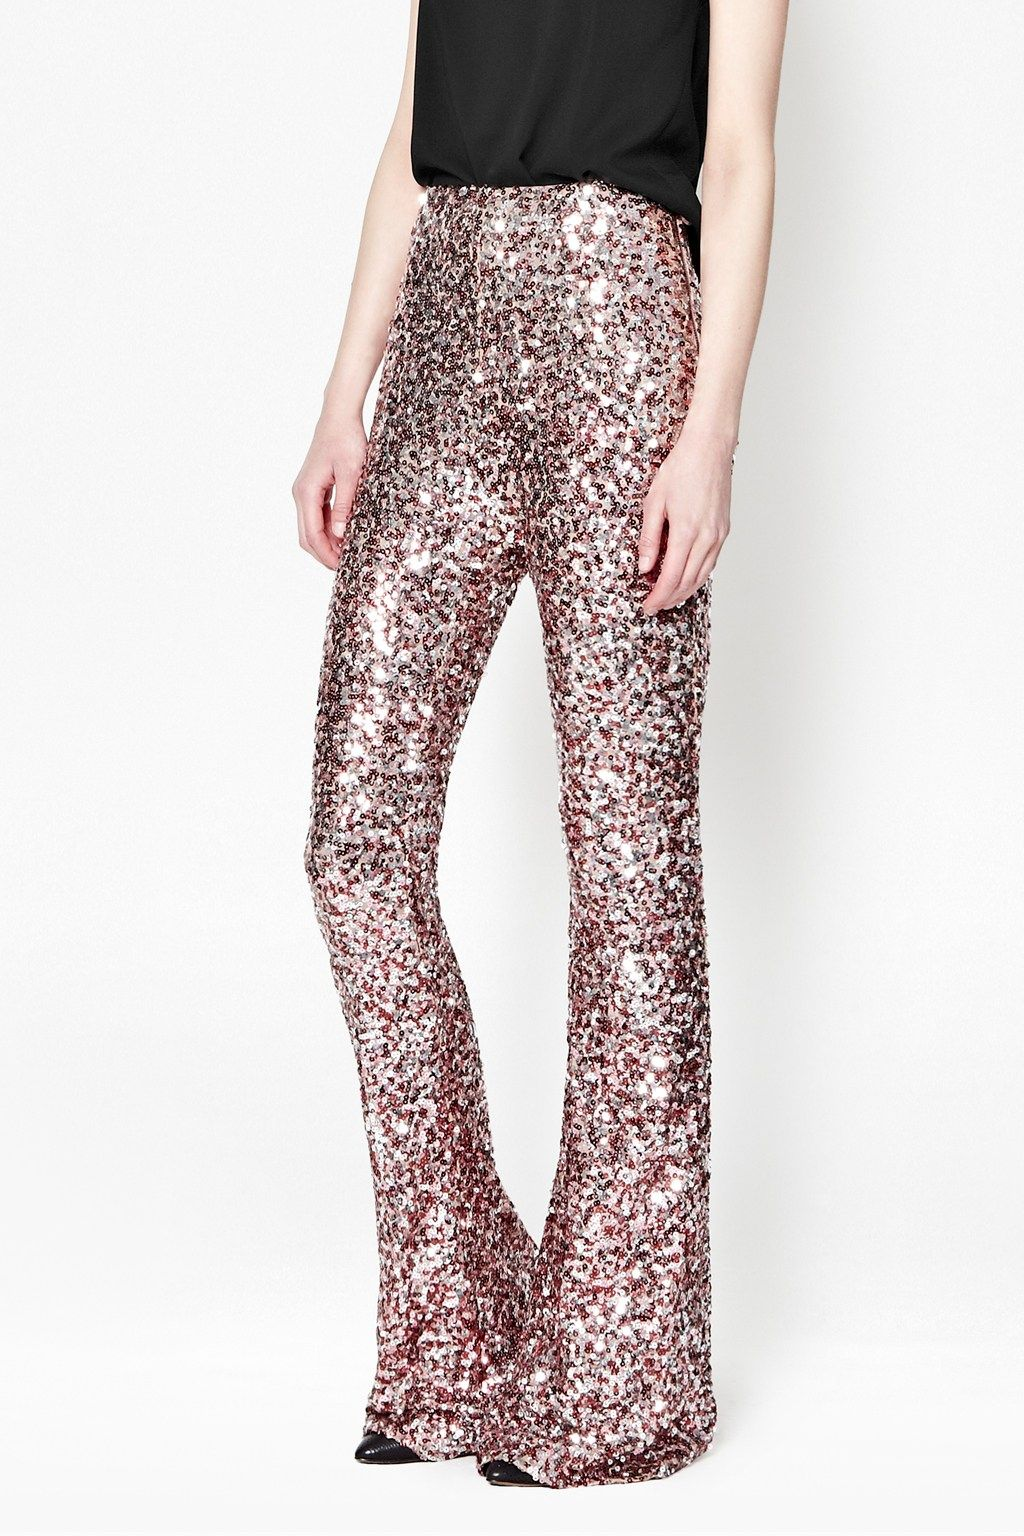 9b5f1dfbe3980b Lunar Sparkle Sequin Flares | Trousers & Leggings | French Connection Usa